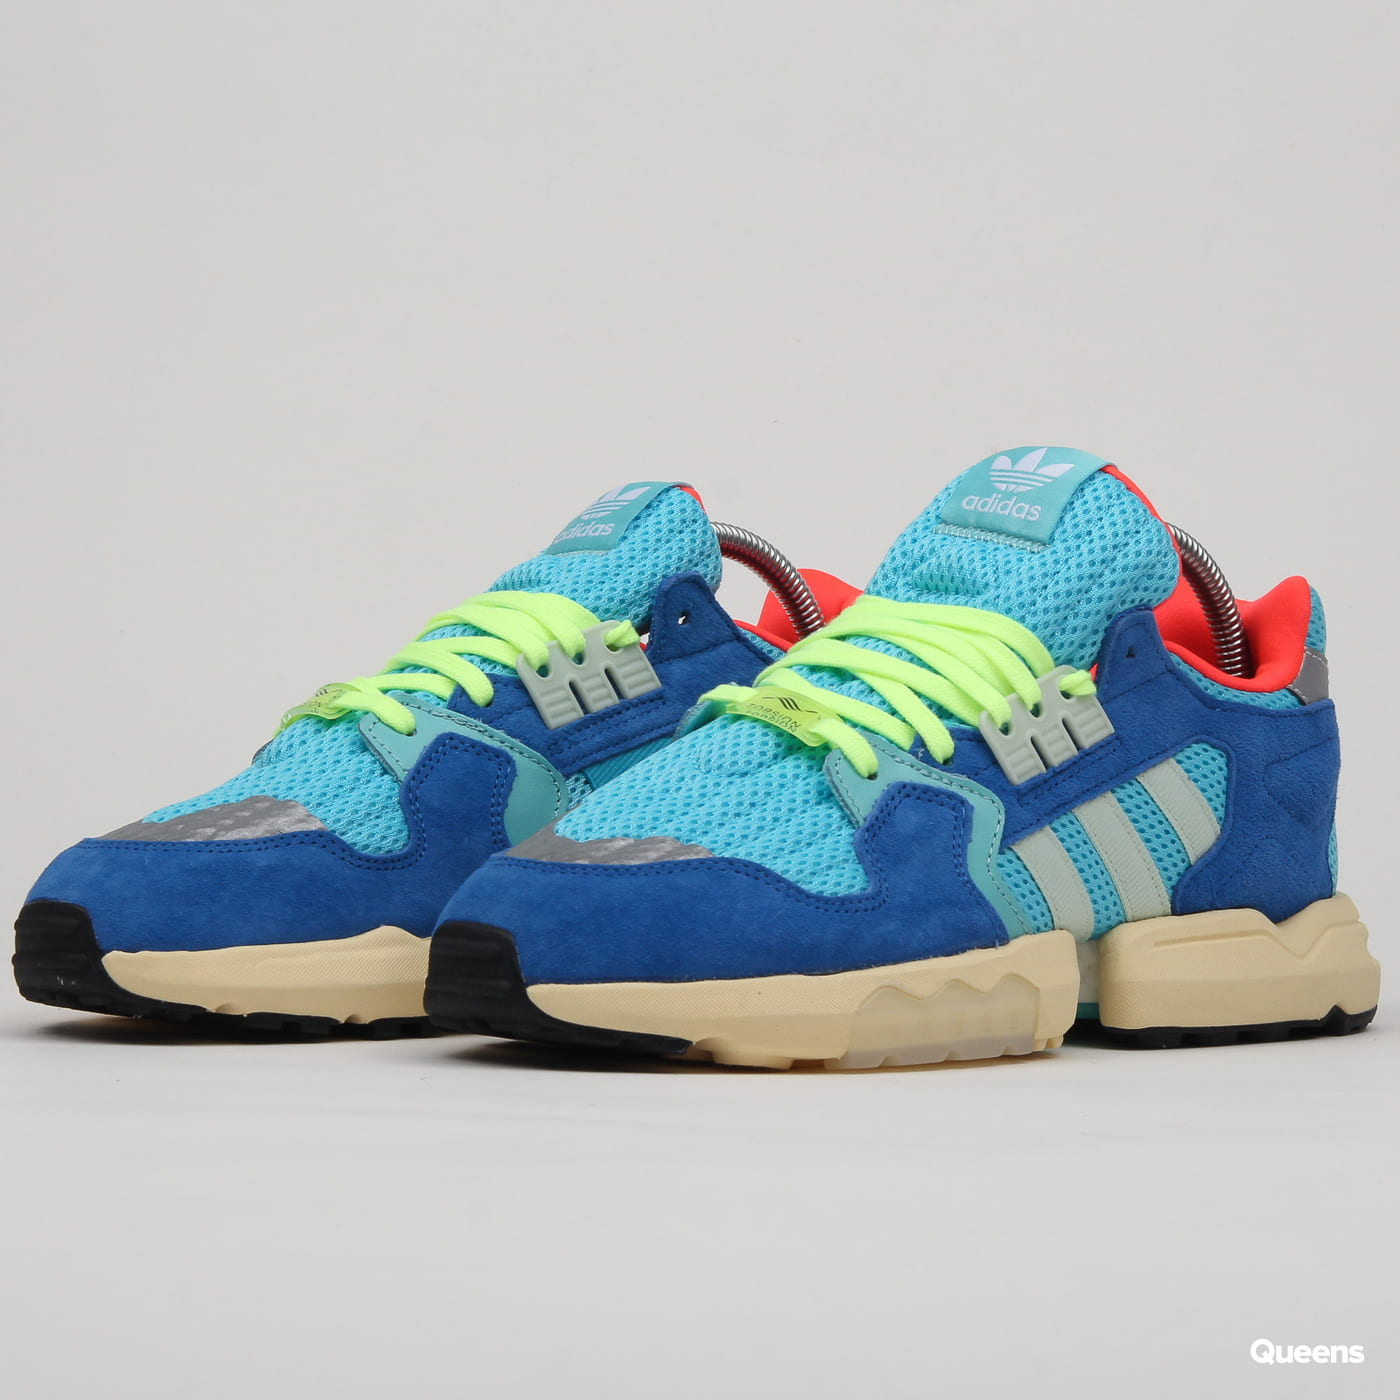 hot sale online 14e6b 39fca adidas Originals ZX Torsion brcyan / lingrn / blue